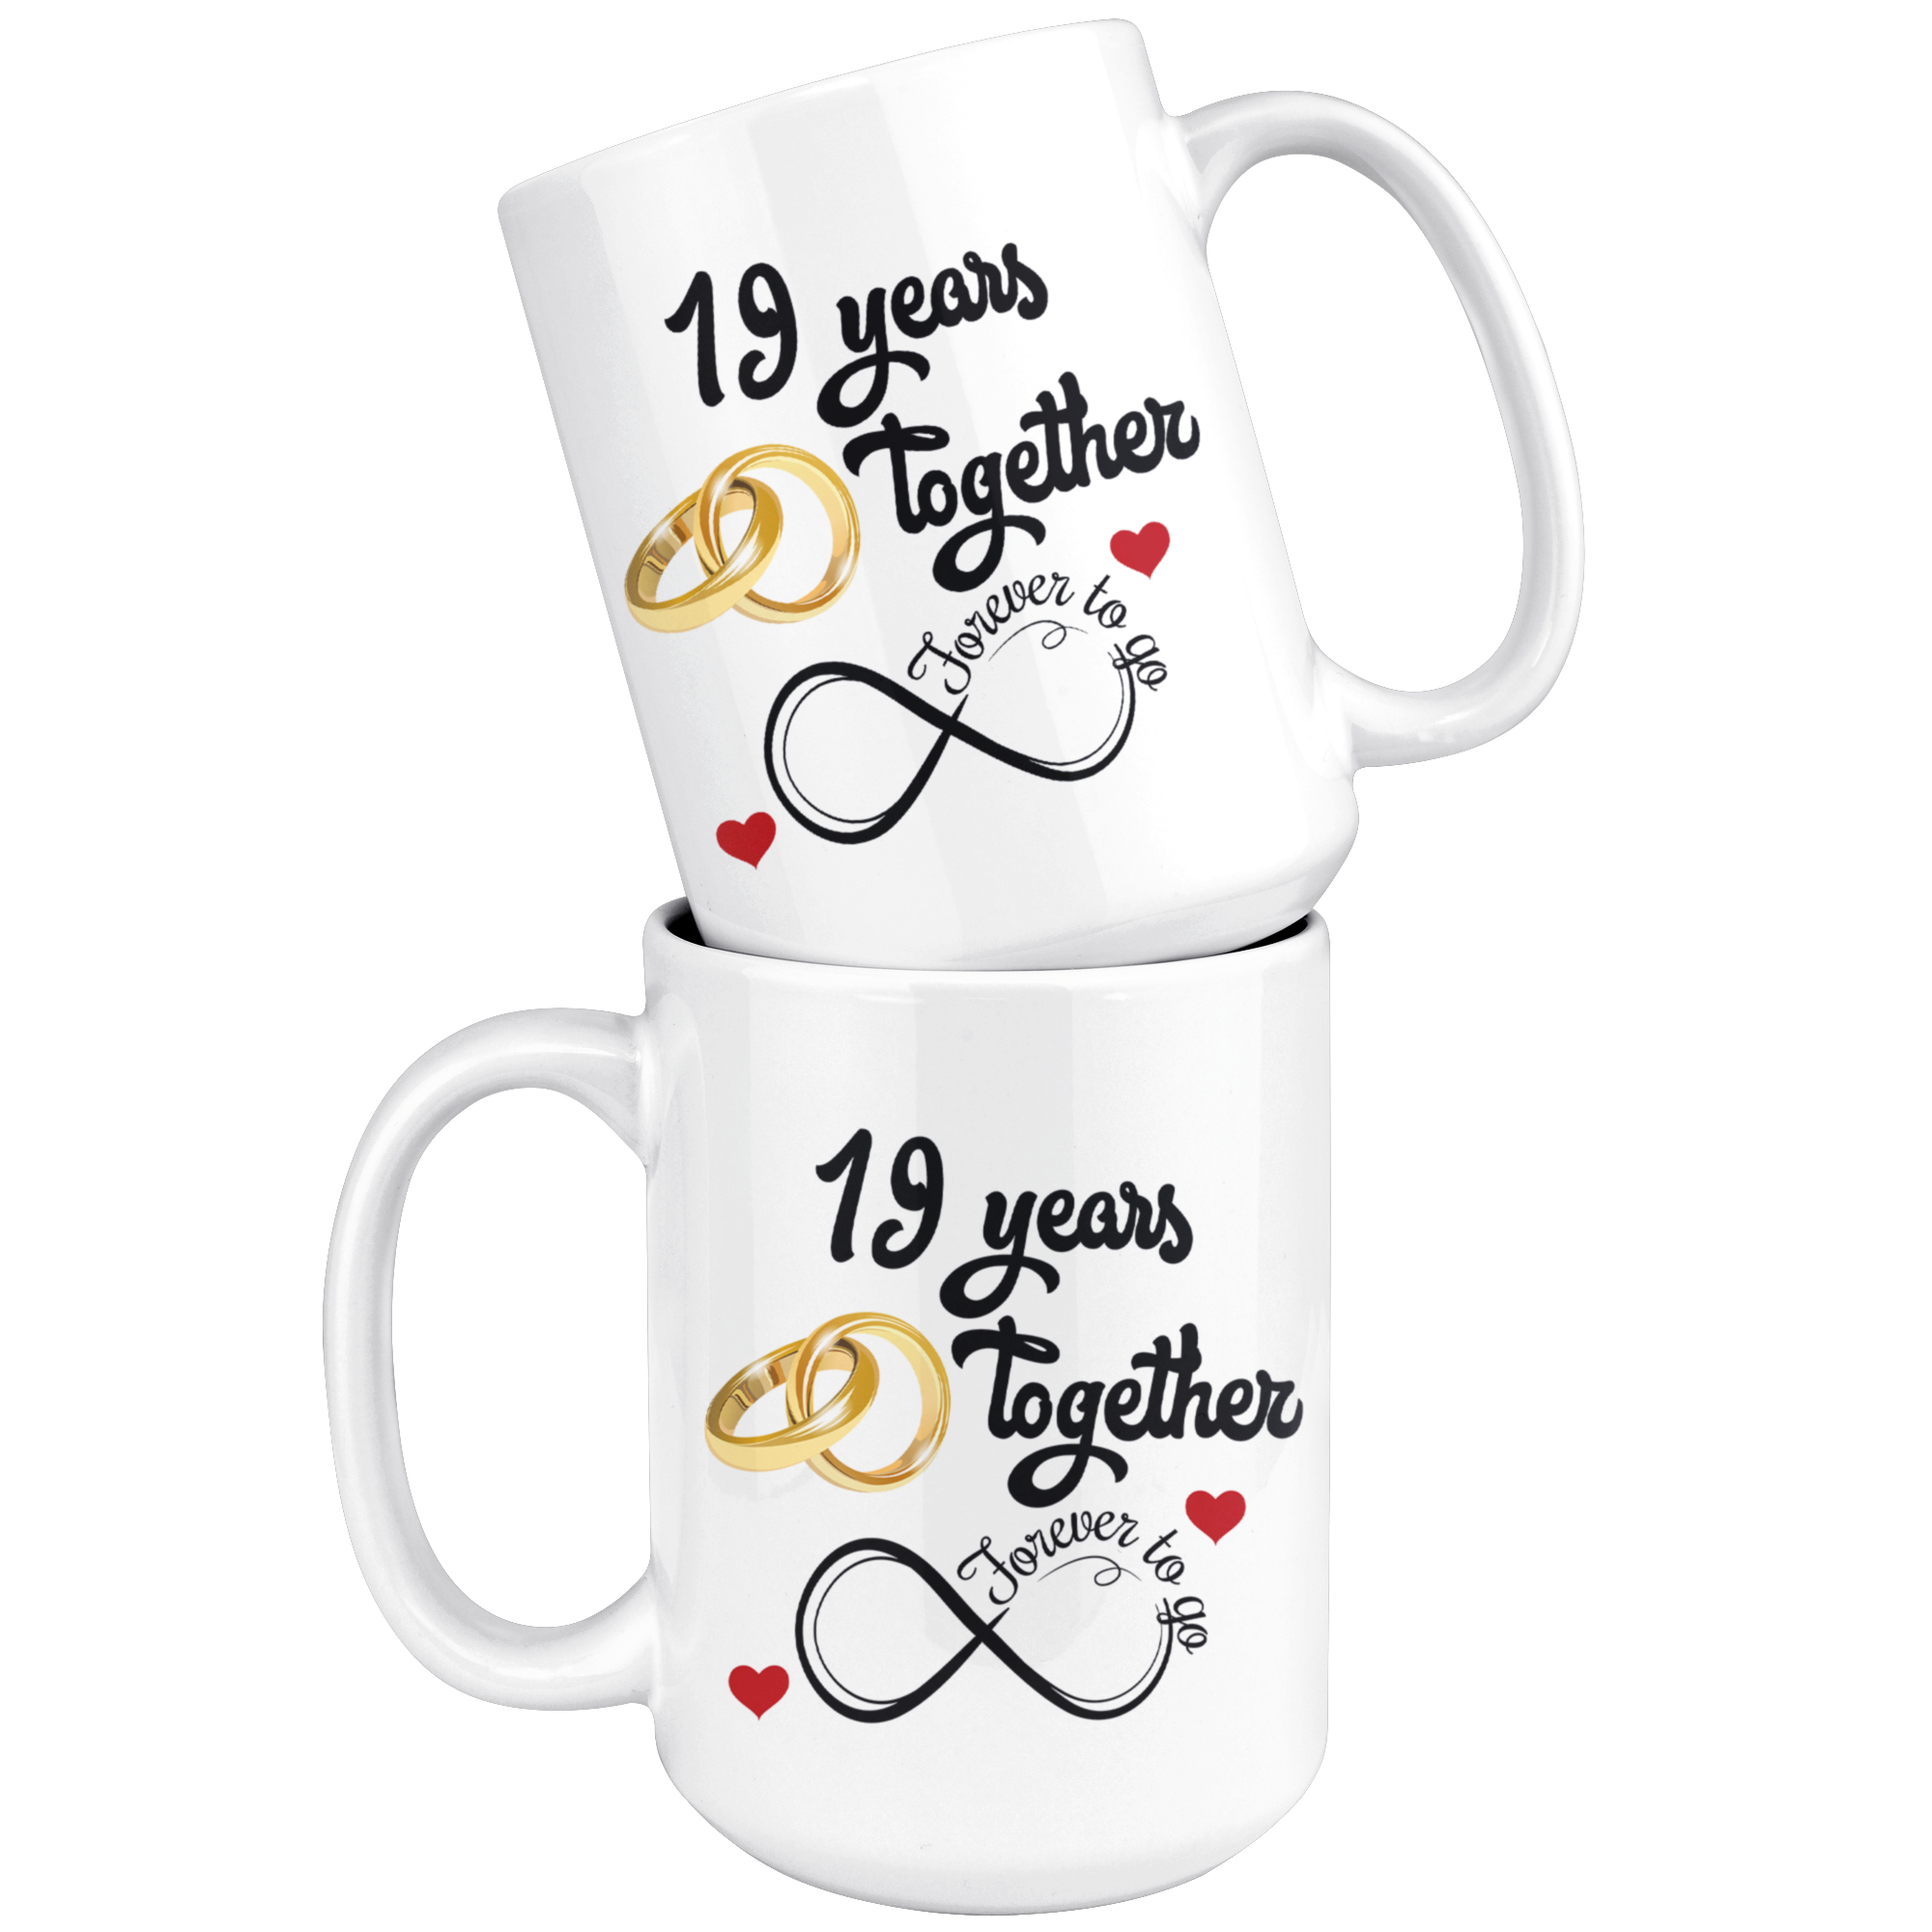 Gifts For Him For Wedding Anniversary: 19th Wedding Anniversary Gift For Him And Her, Married For